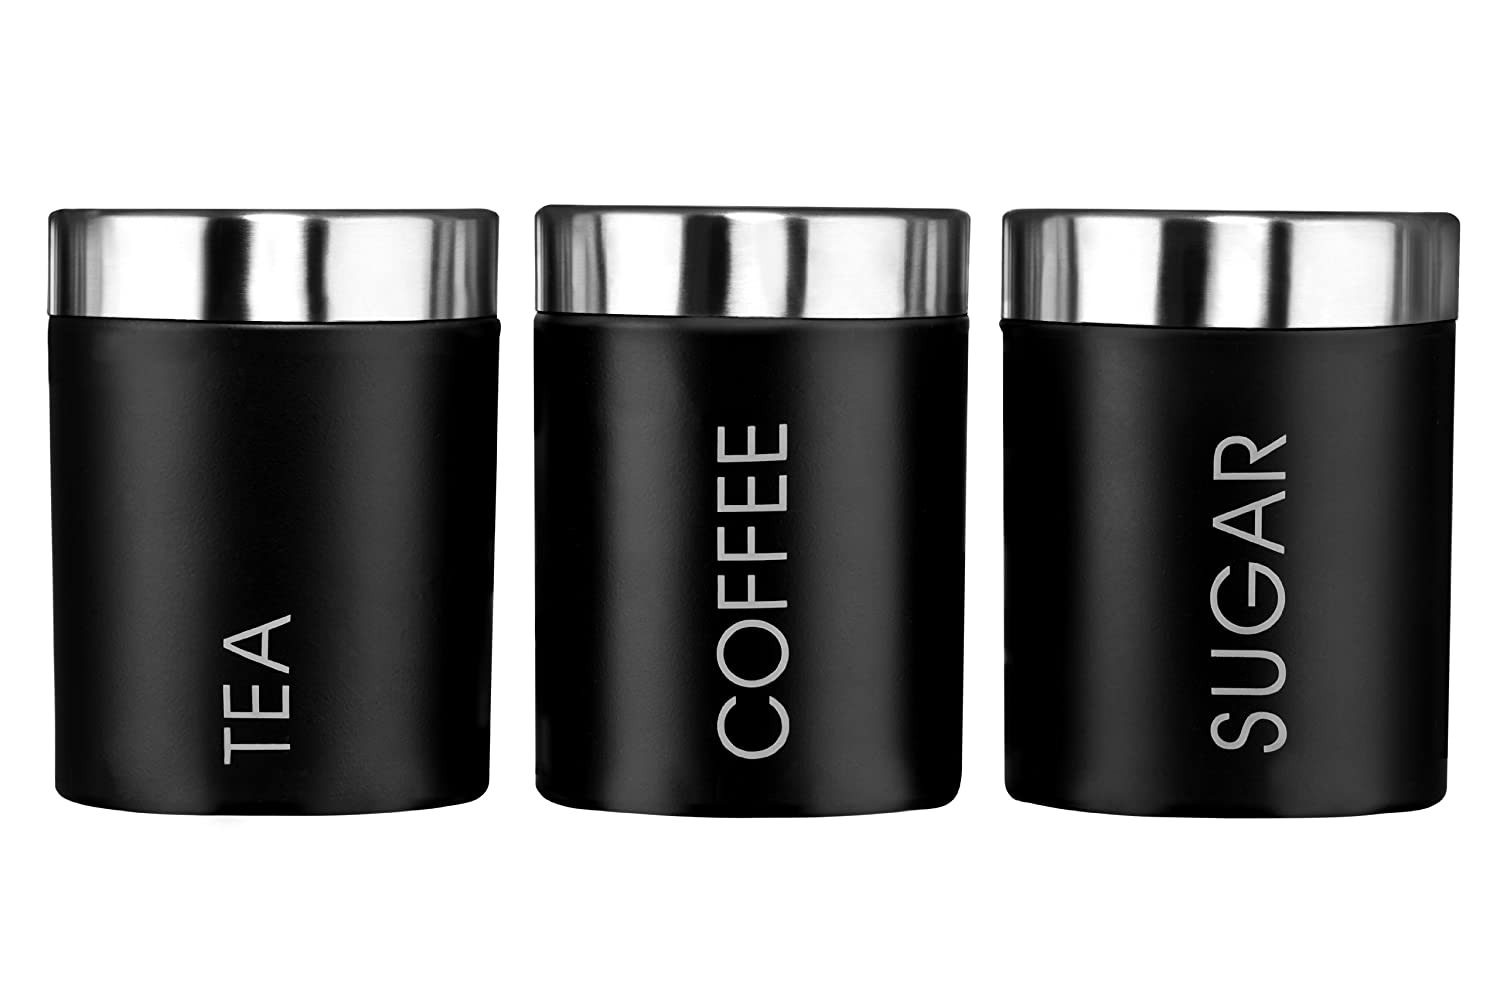 Premier housewares liberty tea coffee and sugar canisters set of 3 black amazon co uk kitchen home